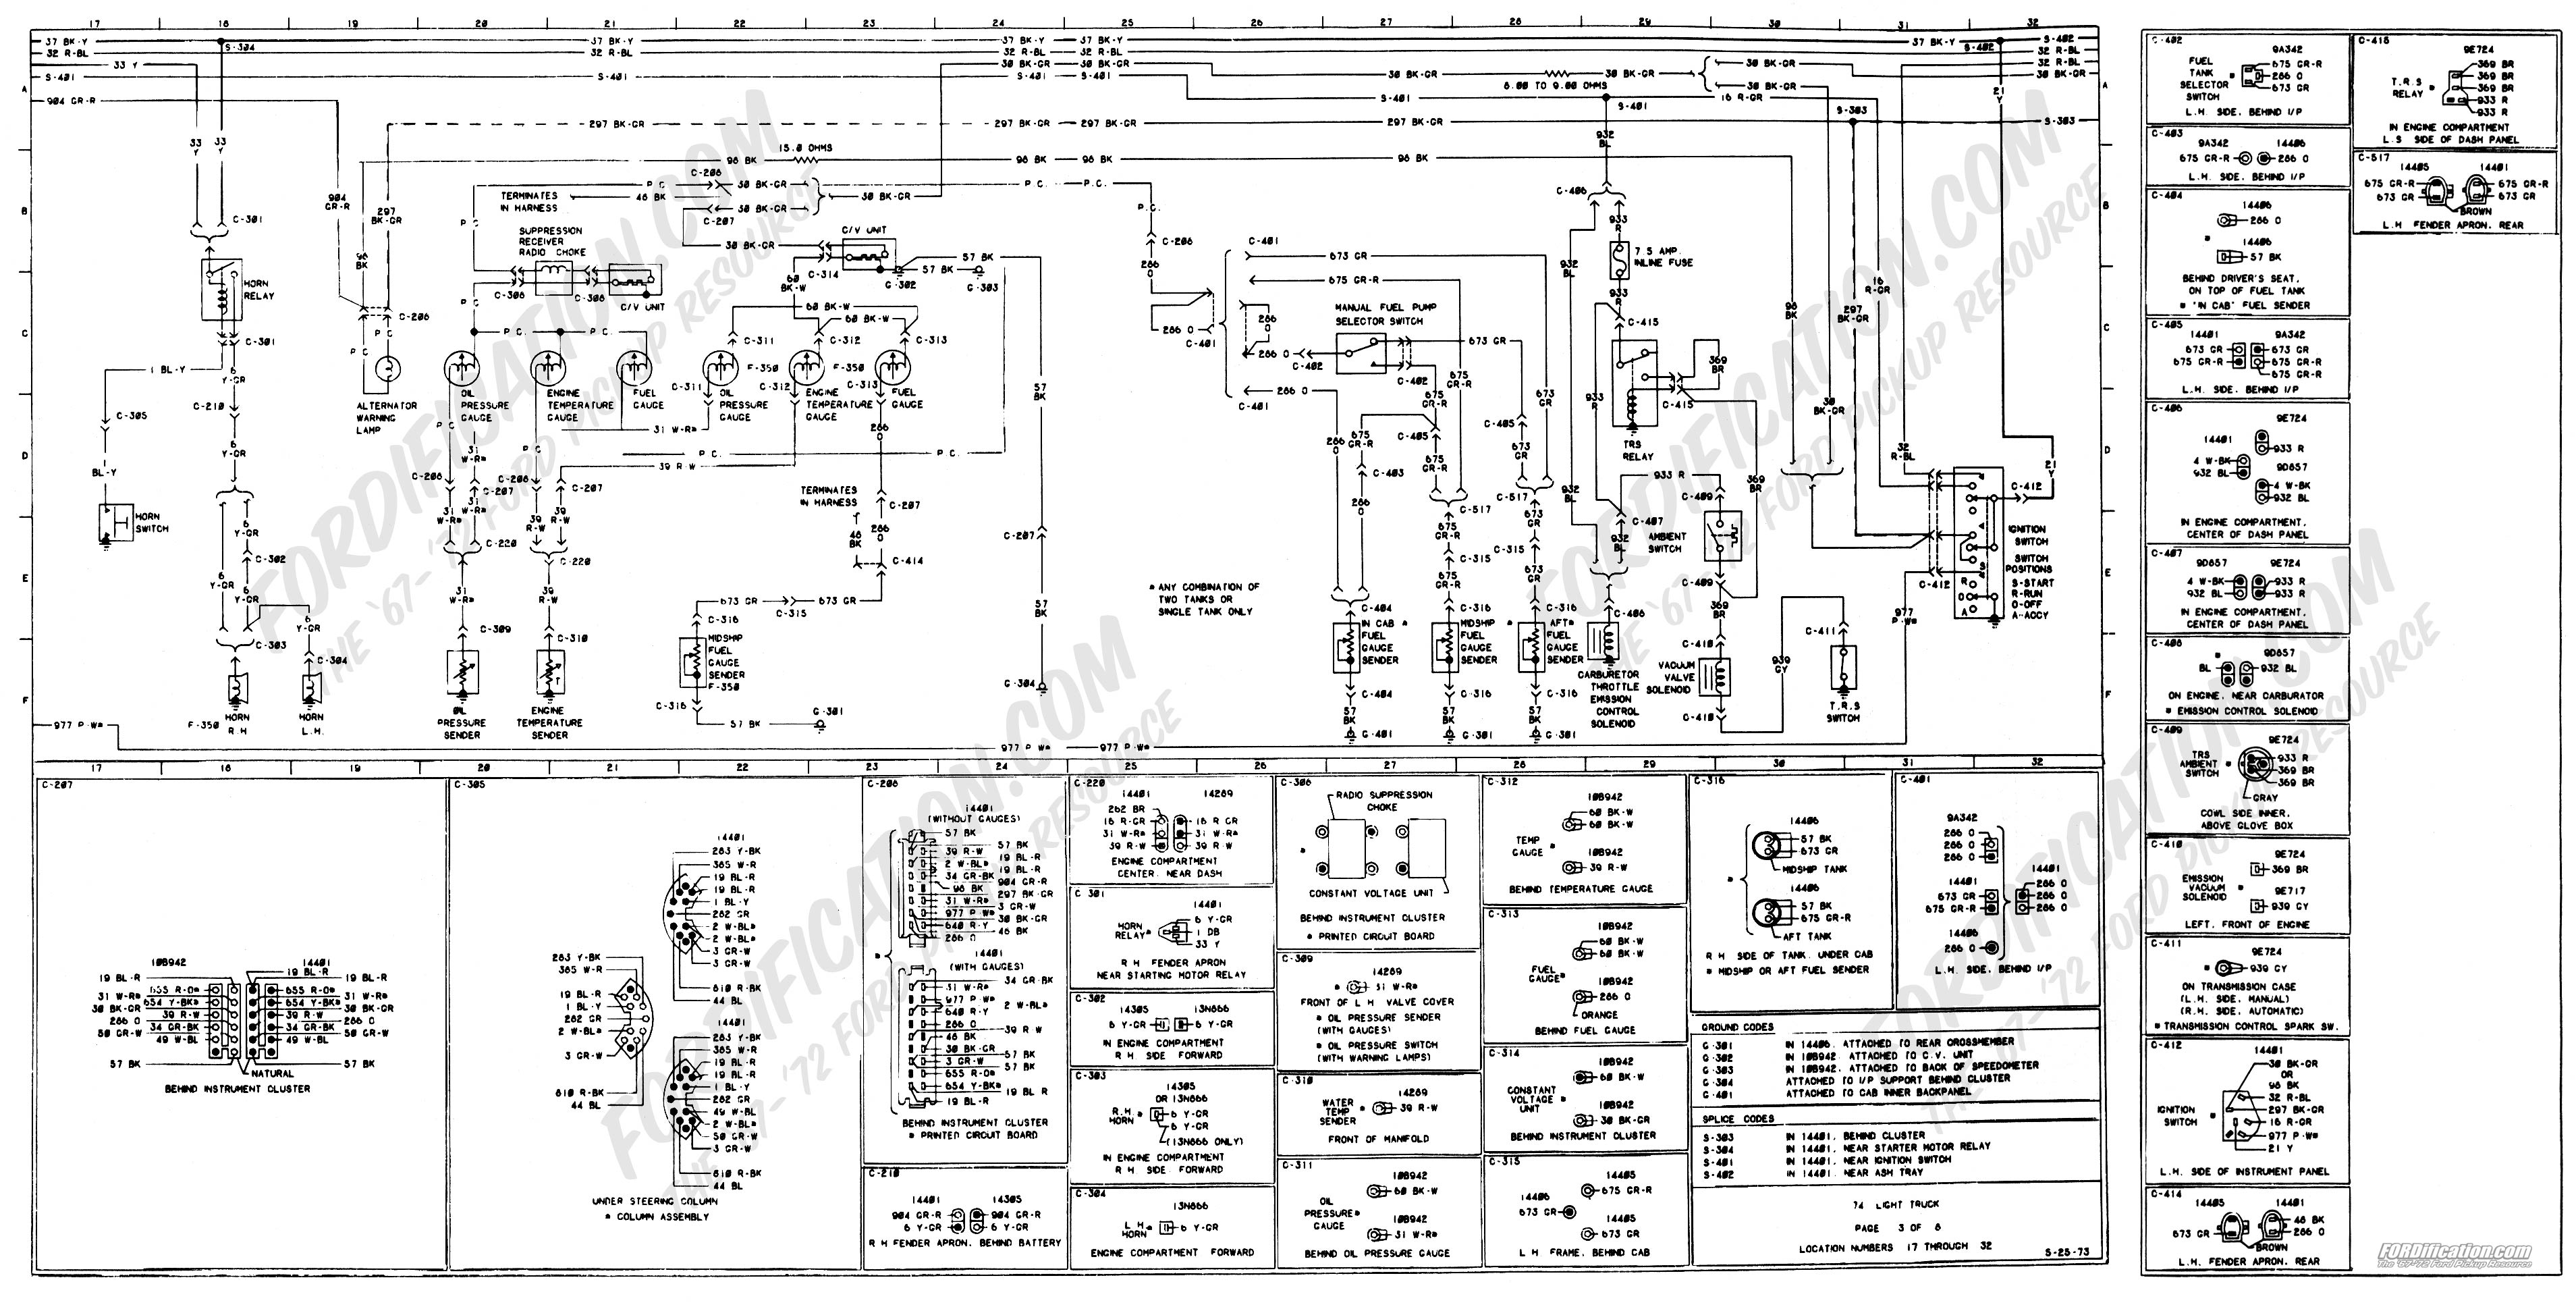 1967 1978 Ford F100 Ignition Switch Diagram Schematics Truck Wiring 1973 1979 Diagrams Fordification Net 71